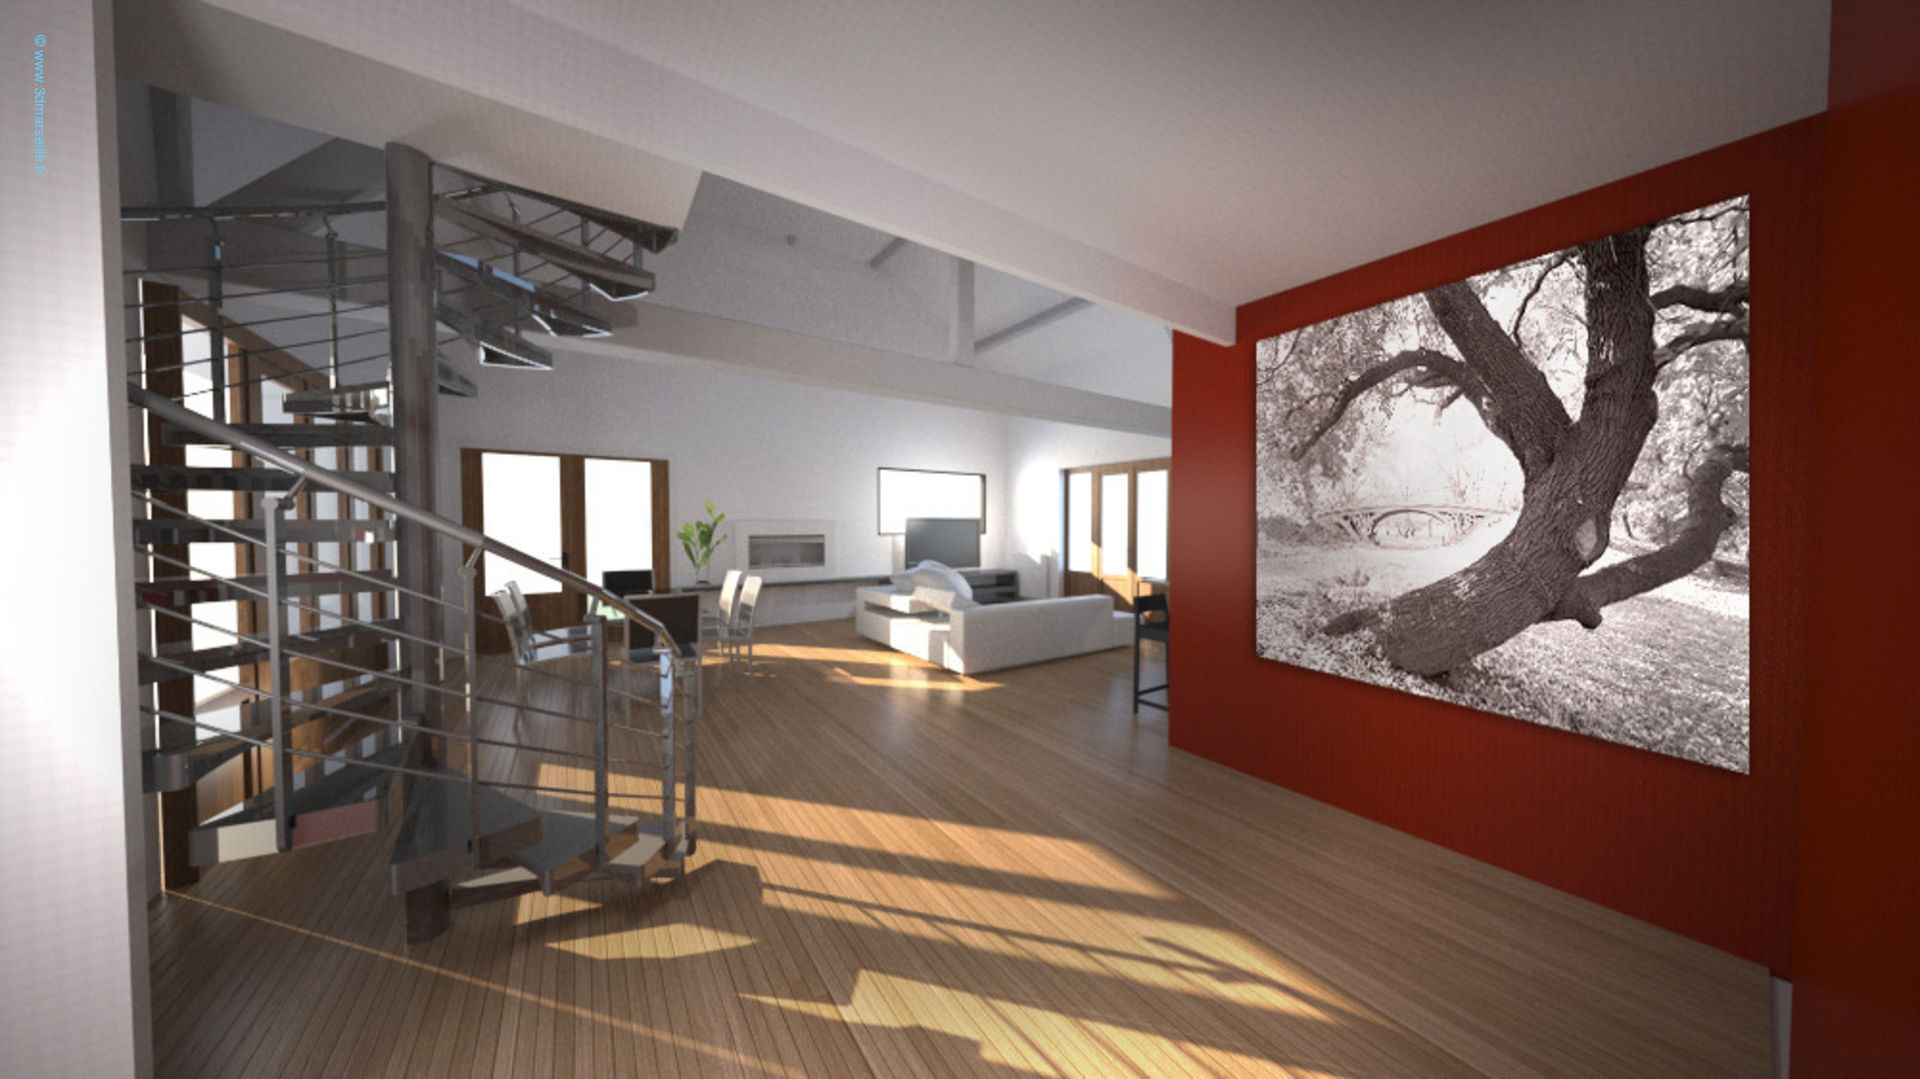 Projet d am nagement int rieur maison individuelle 3d for Amenagement interieur d une maison